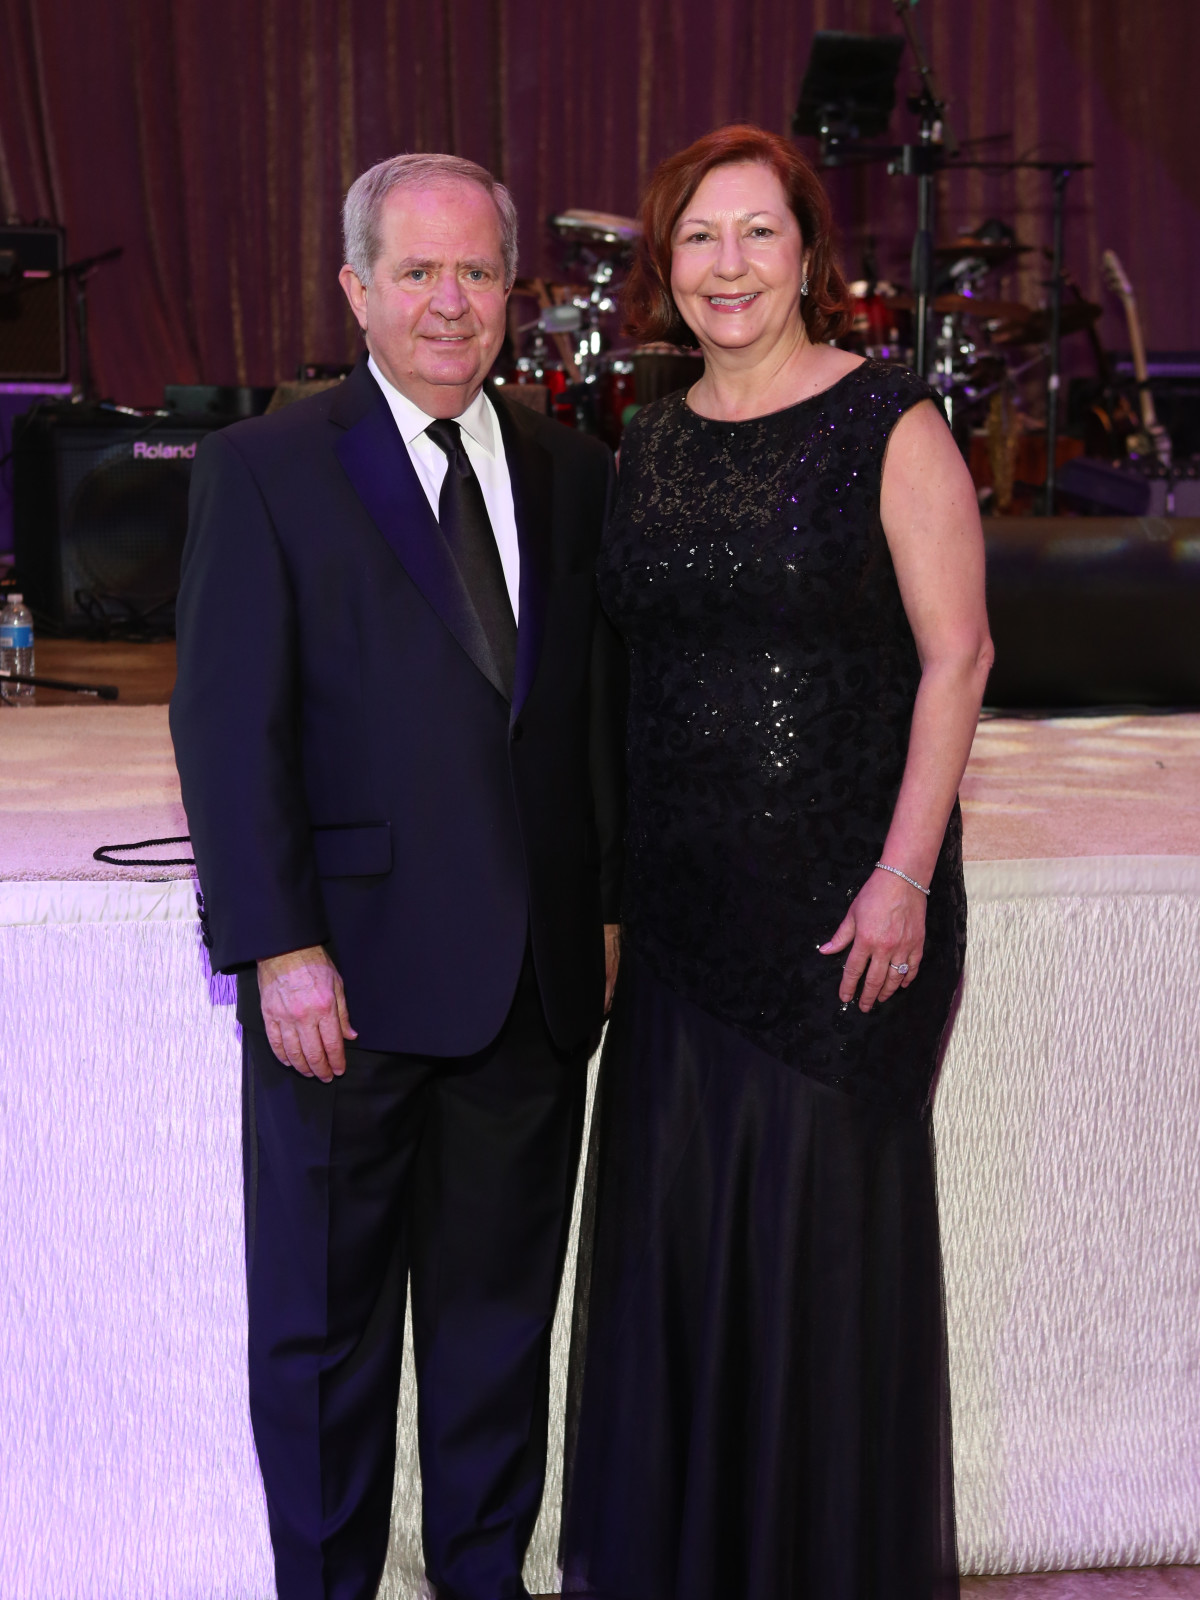 SPA gala, April 2016, Edward Mallett, Theresa Mallett